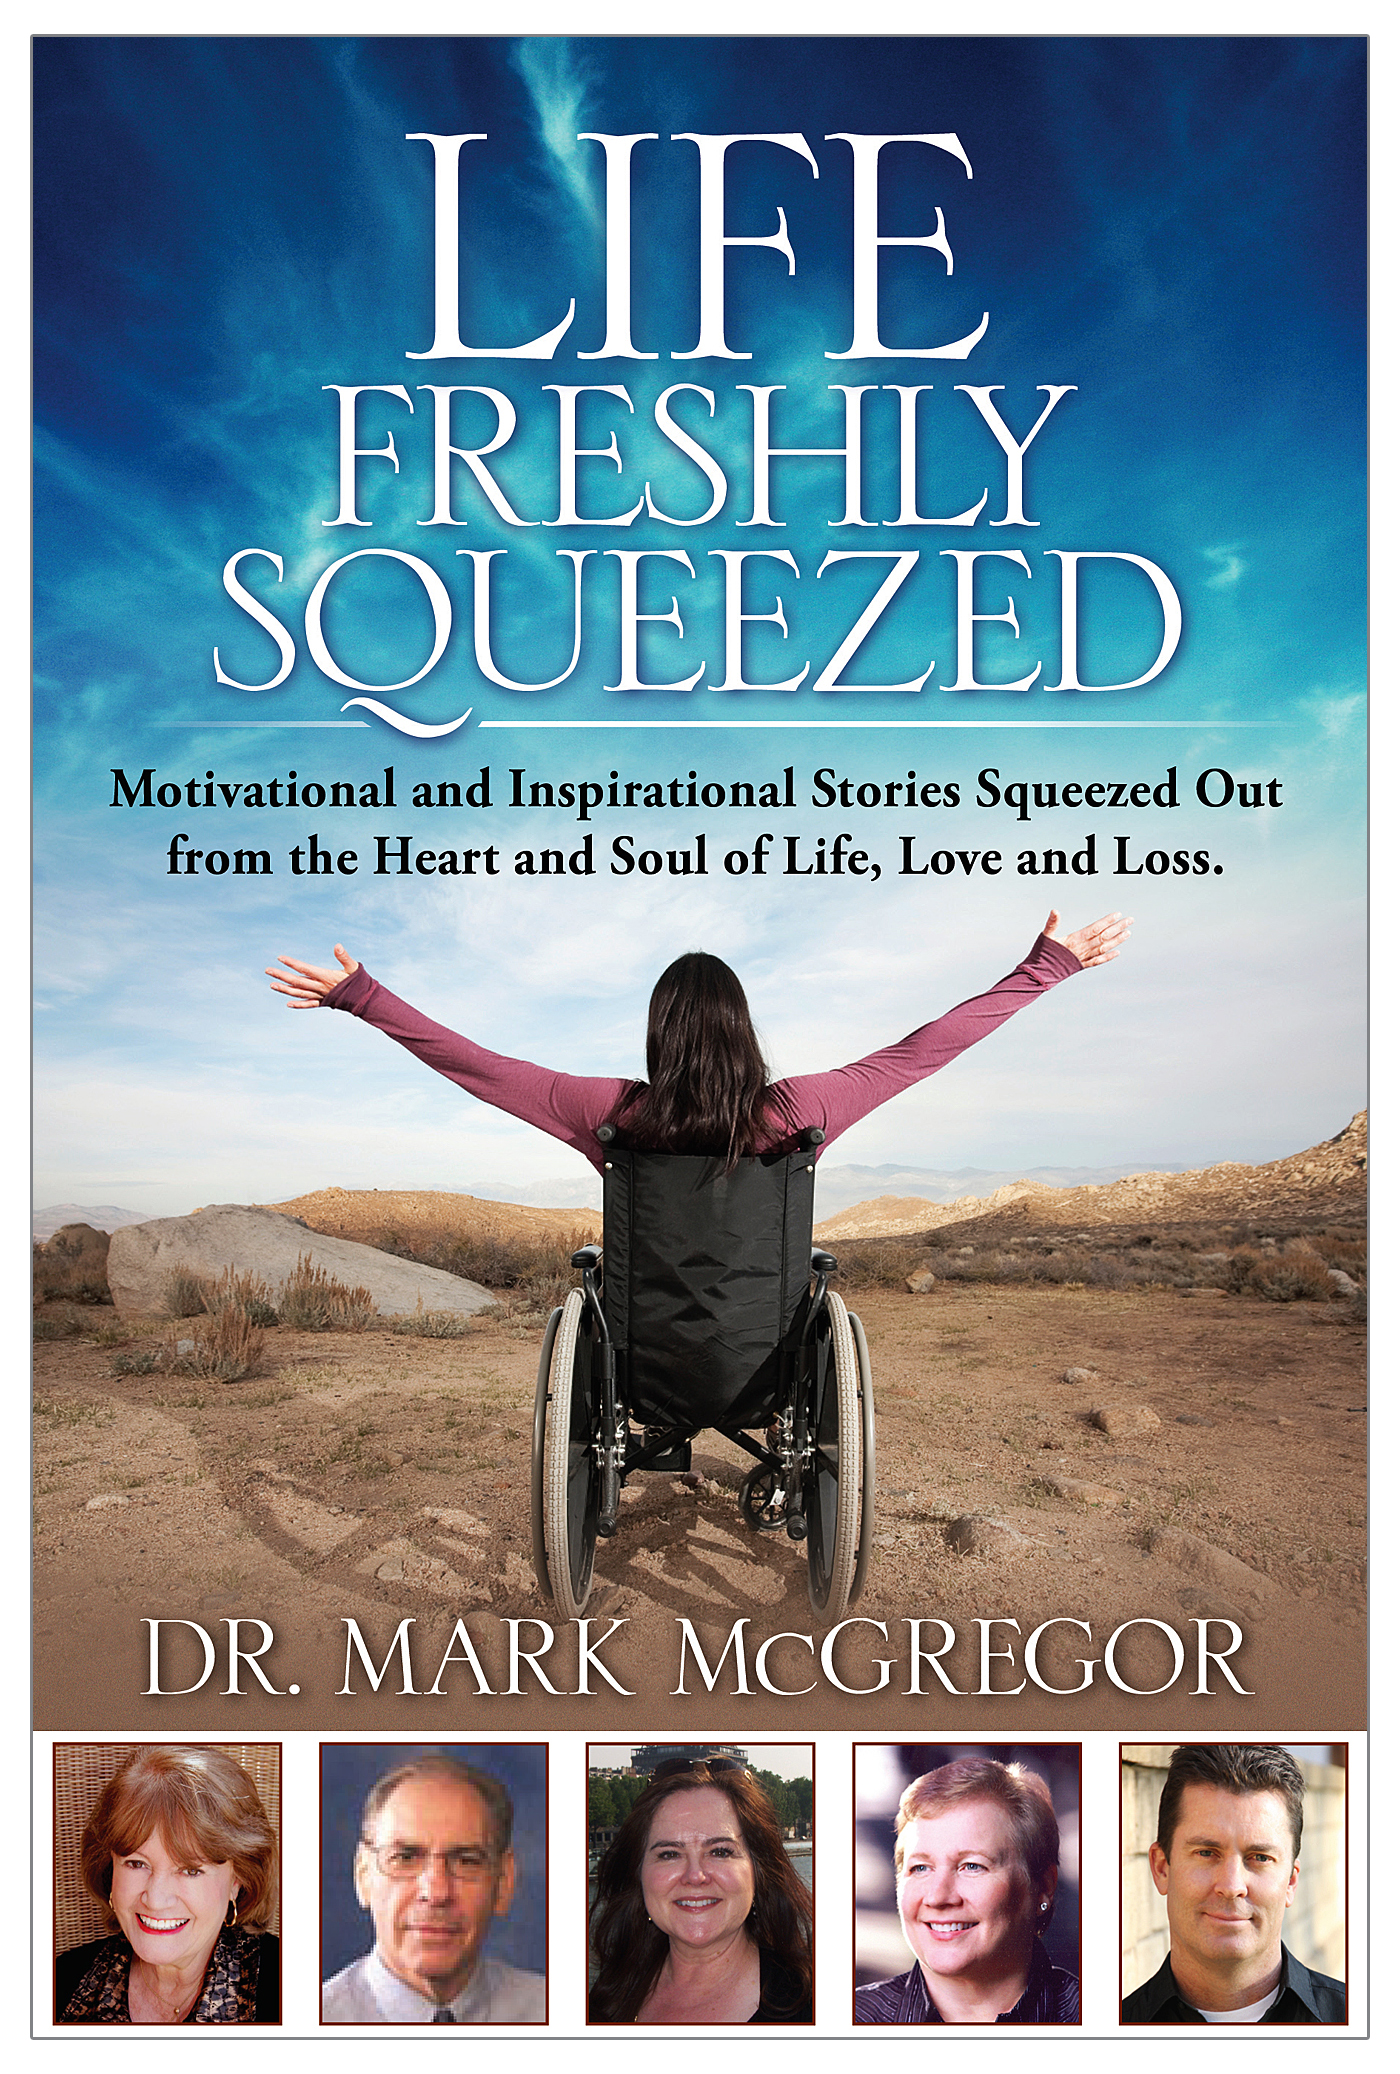 Life Freshly Squeezed: Motivational and Inspirational Stories Squeezed Out  from the Heart and Soul of Life, Love and Loss, an Ebook by Dr  Mark